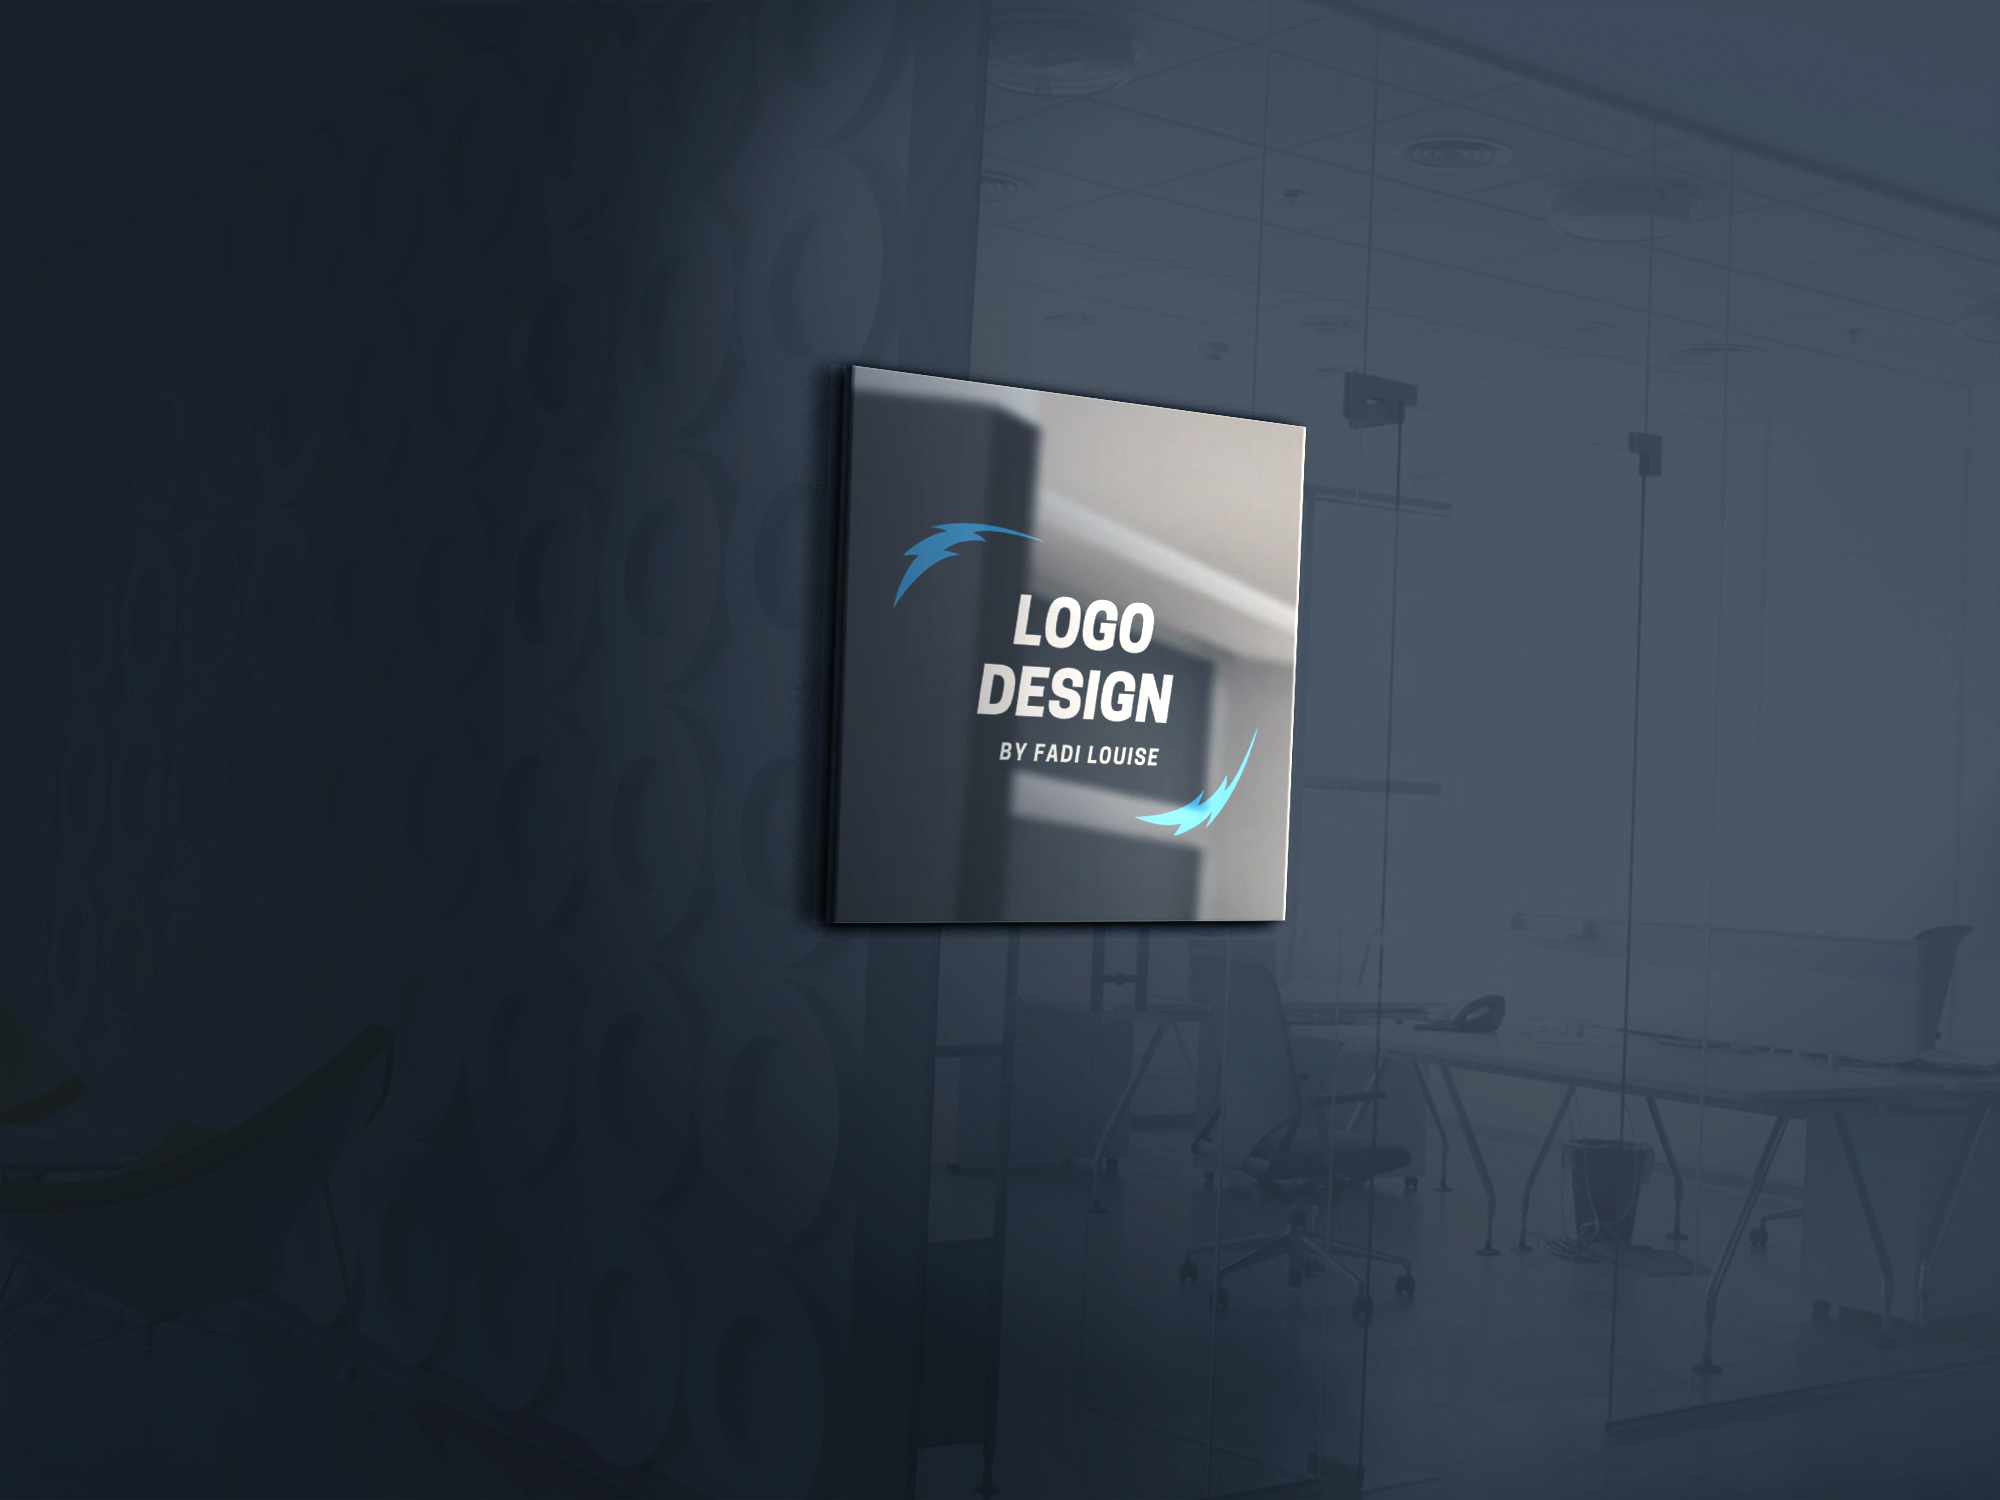 I WILL DESIGN A LOGO TO PROMOTE ALL YOUR EVENTS